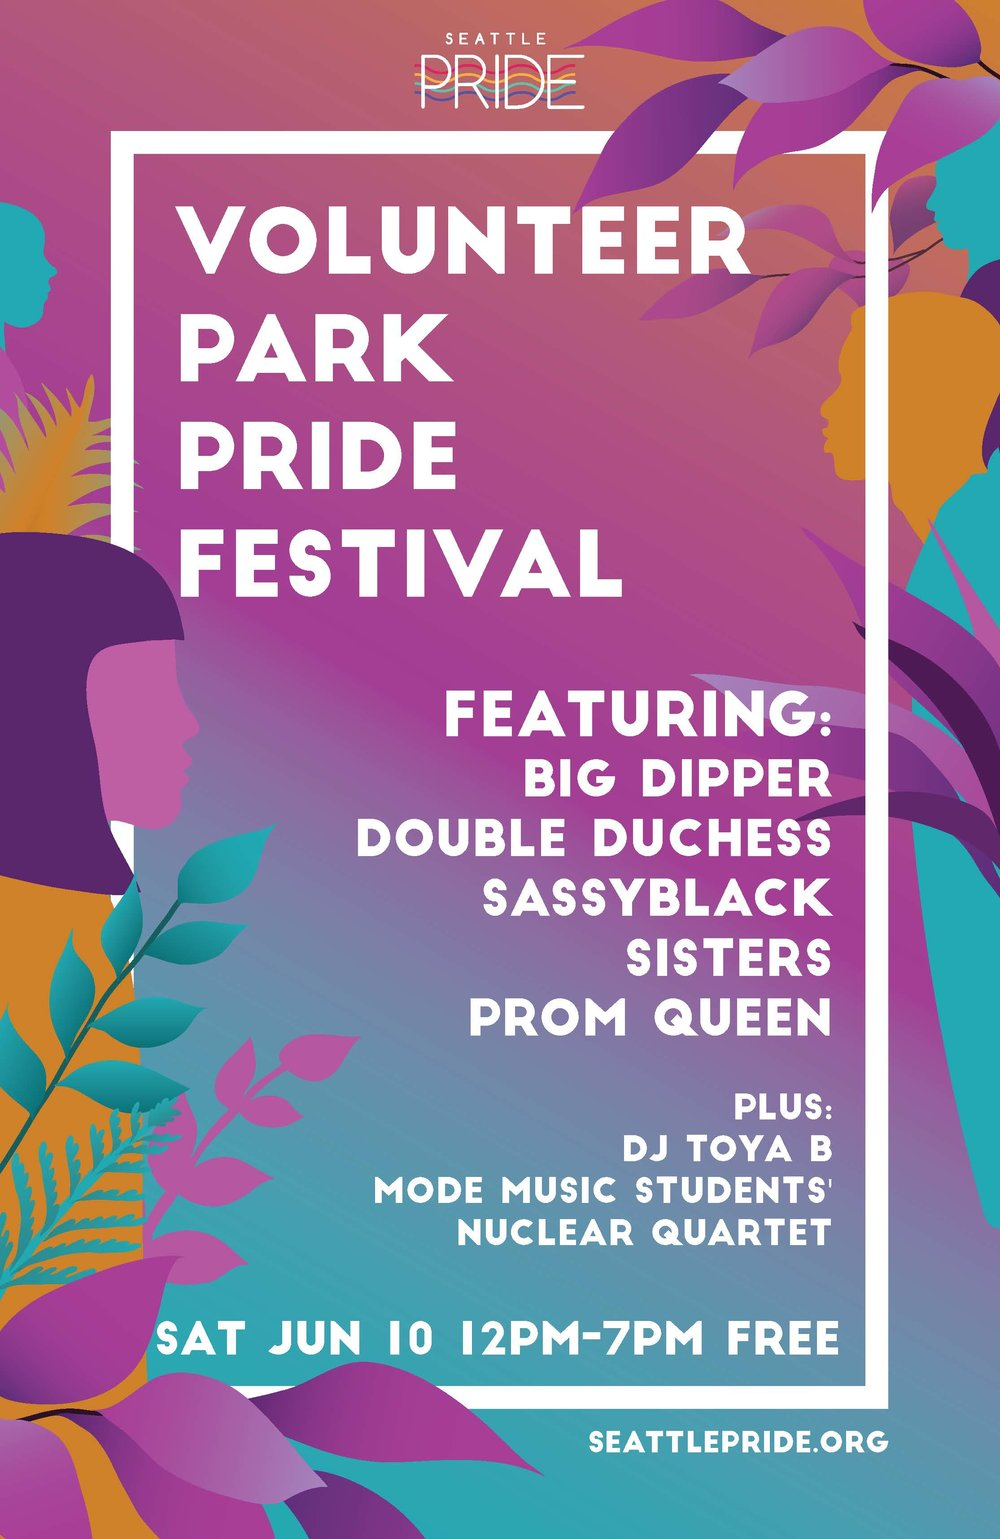 Promotional poster with custom illustration, commissioned for Seattle Pride's 2017 Volunteer Park Pride Festival.